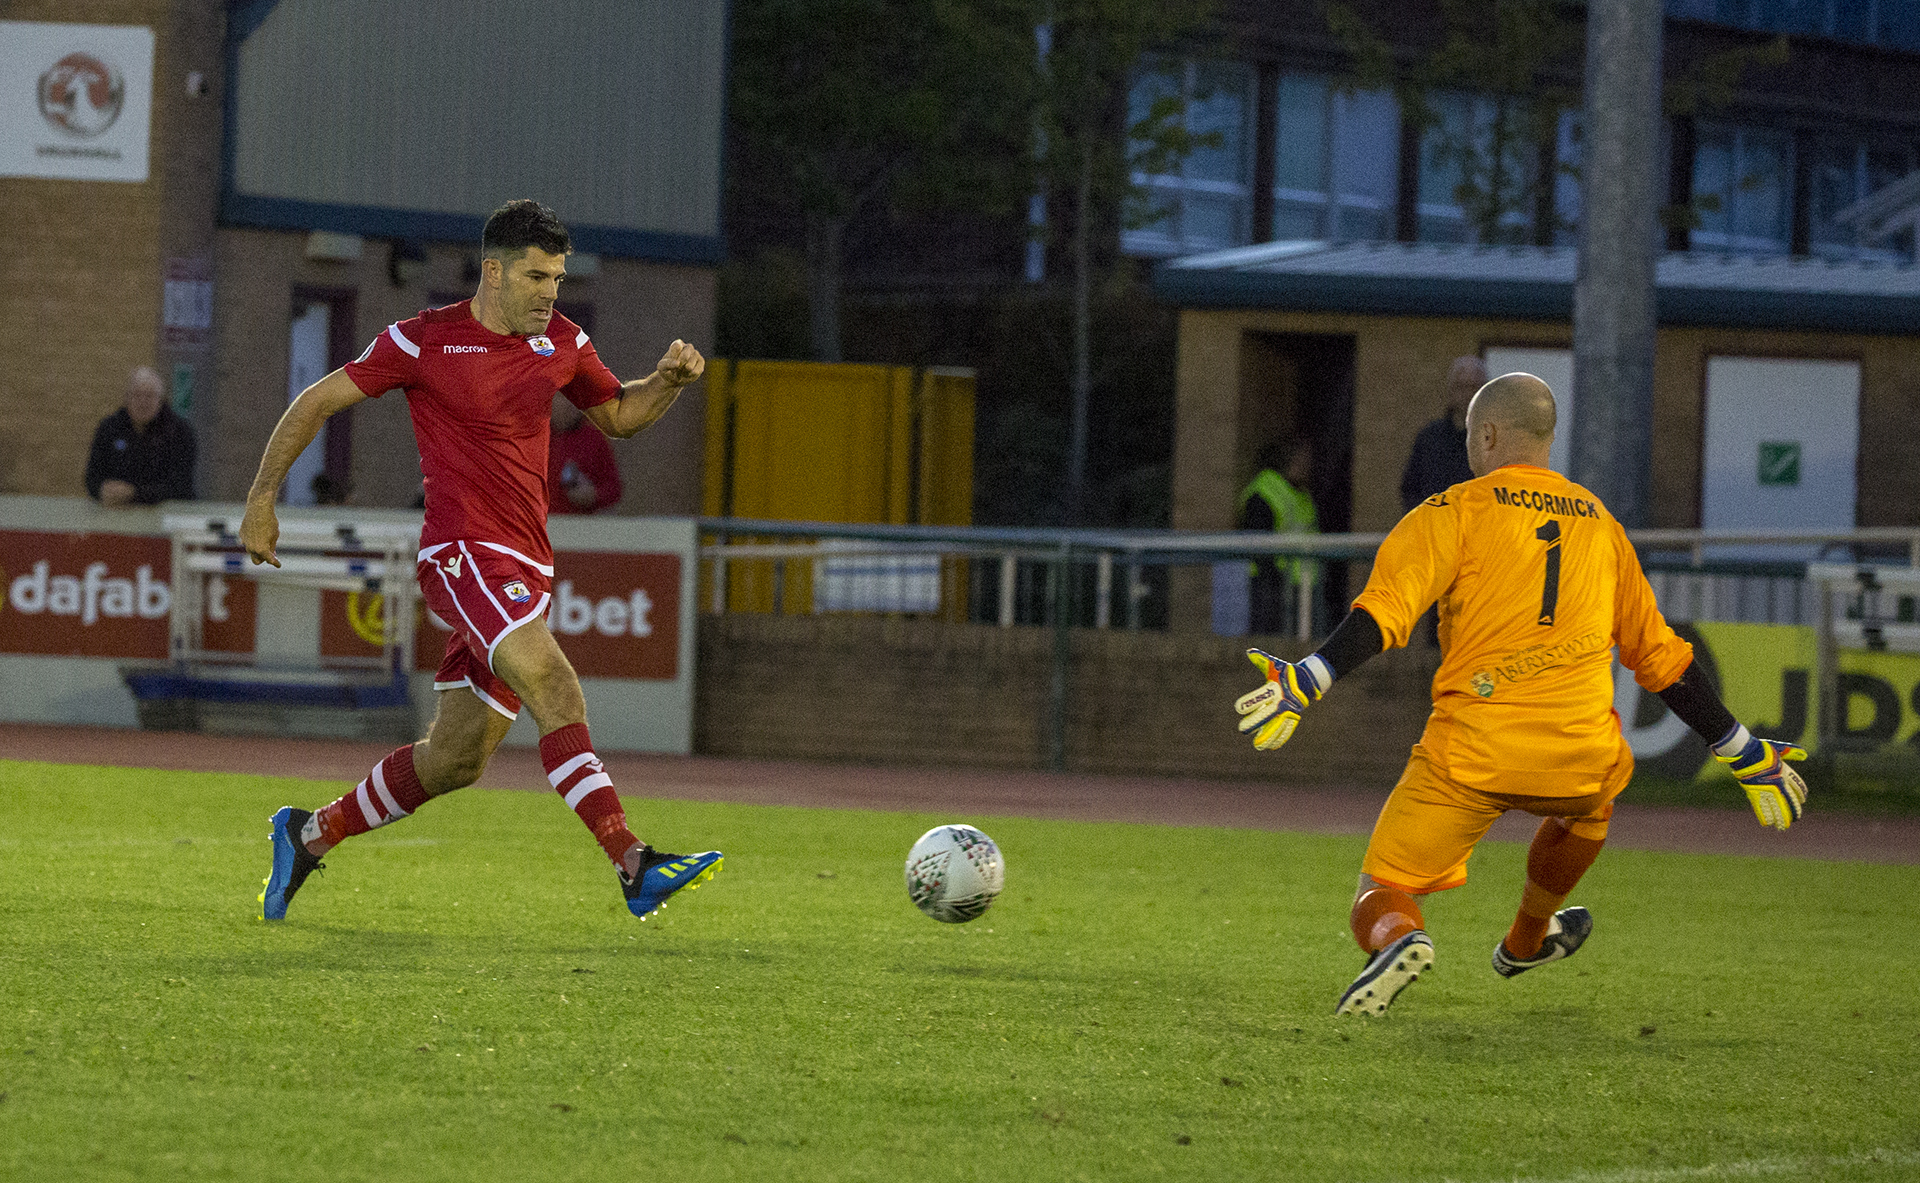 Michael Wilde slots beyond Terry McCormick for The Nomads' second goal of the night © NCM Media